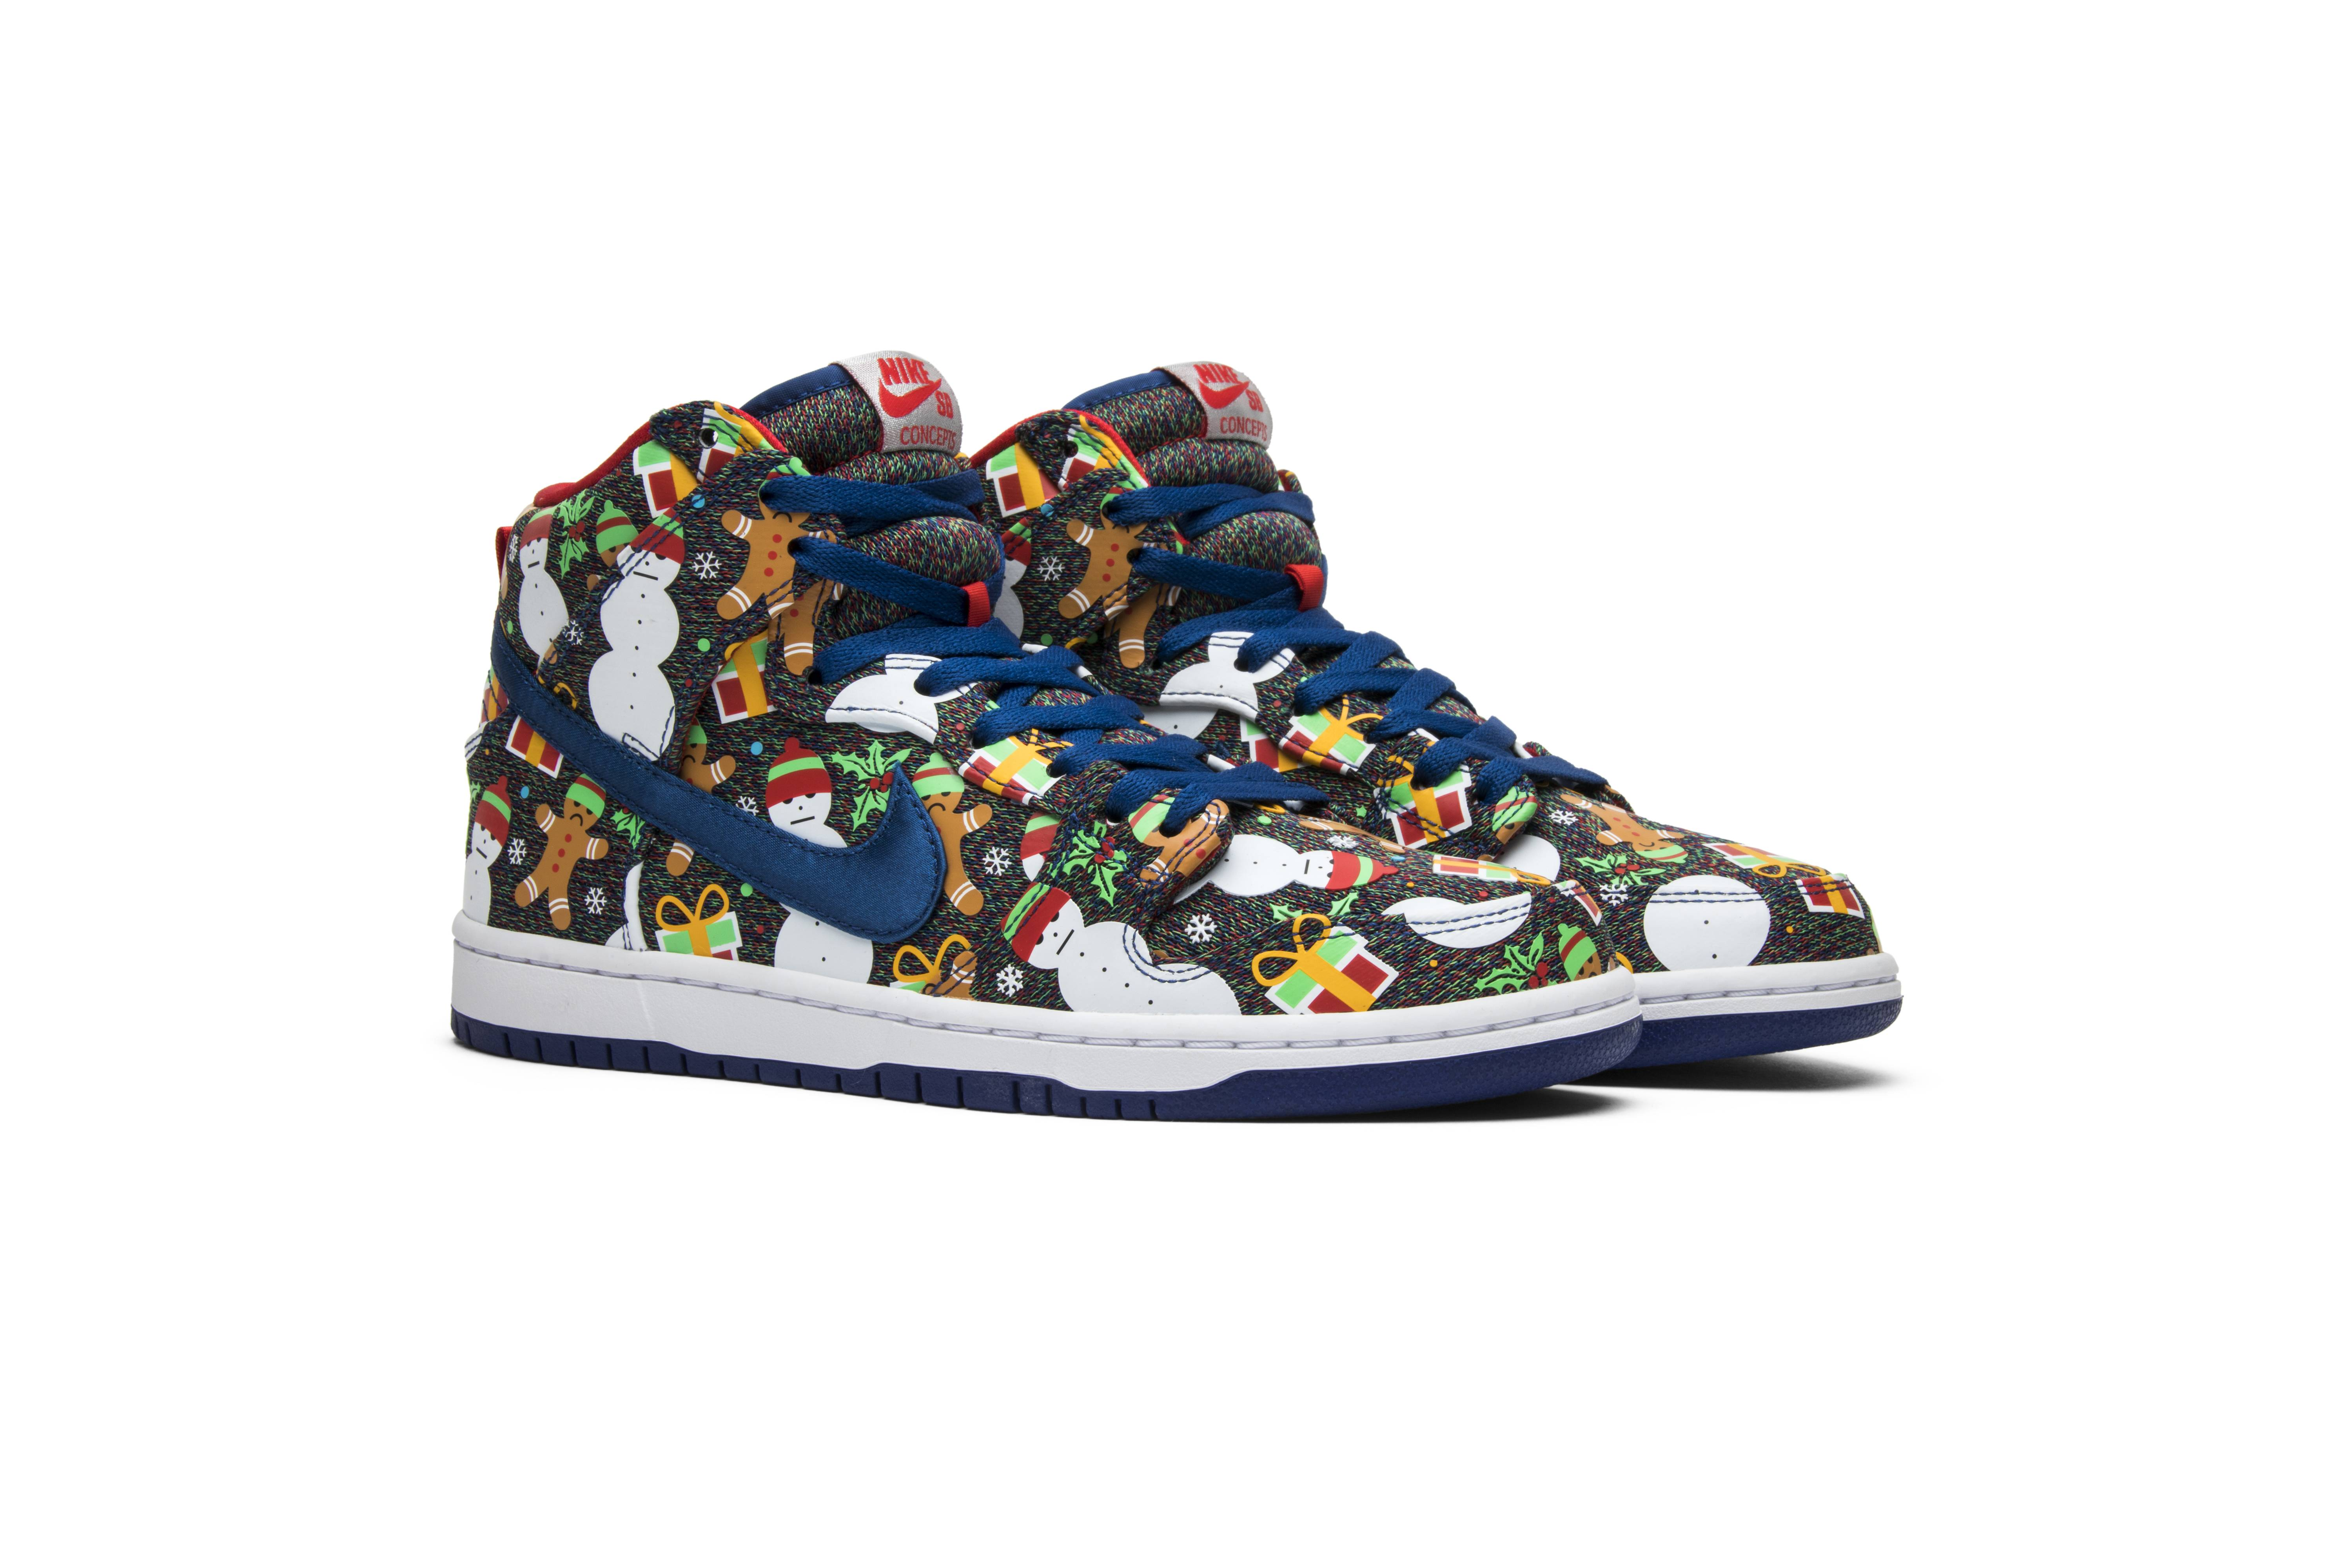 Concepts x SB Dunk Pro High \'Ugly Christmas Sweater\' 2017 - Nike ...